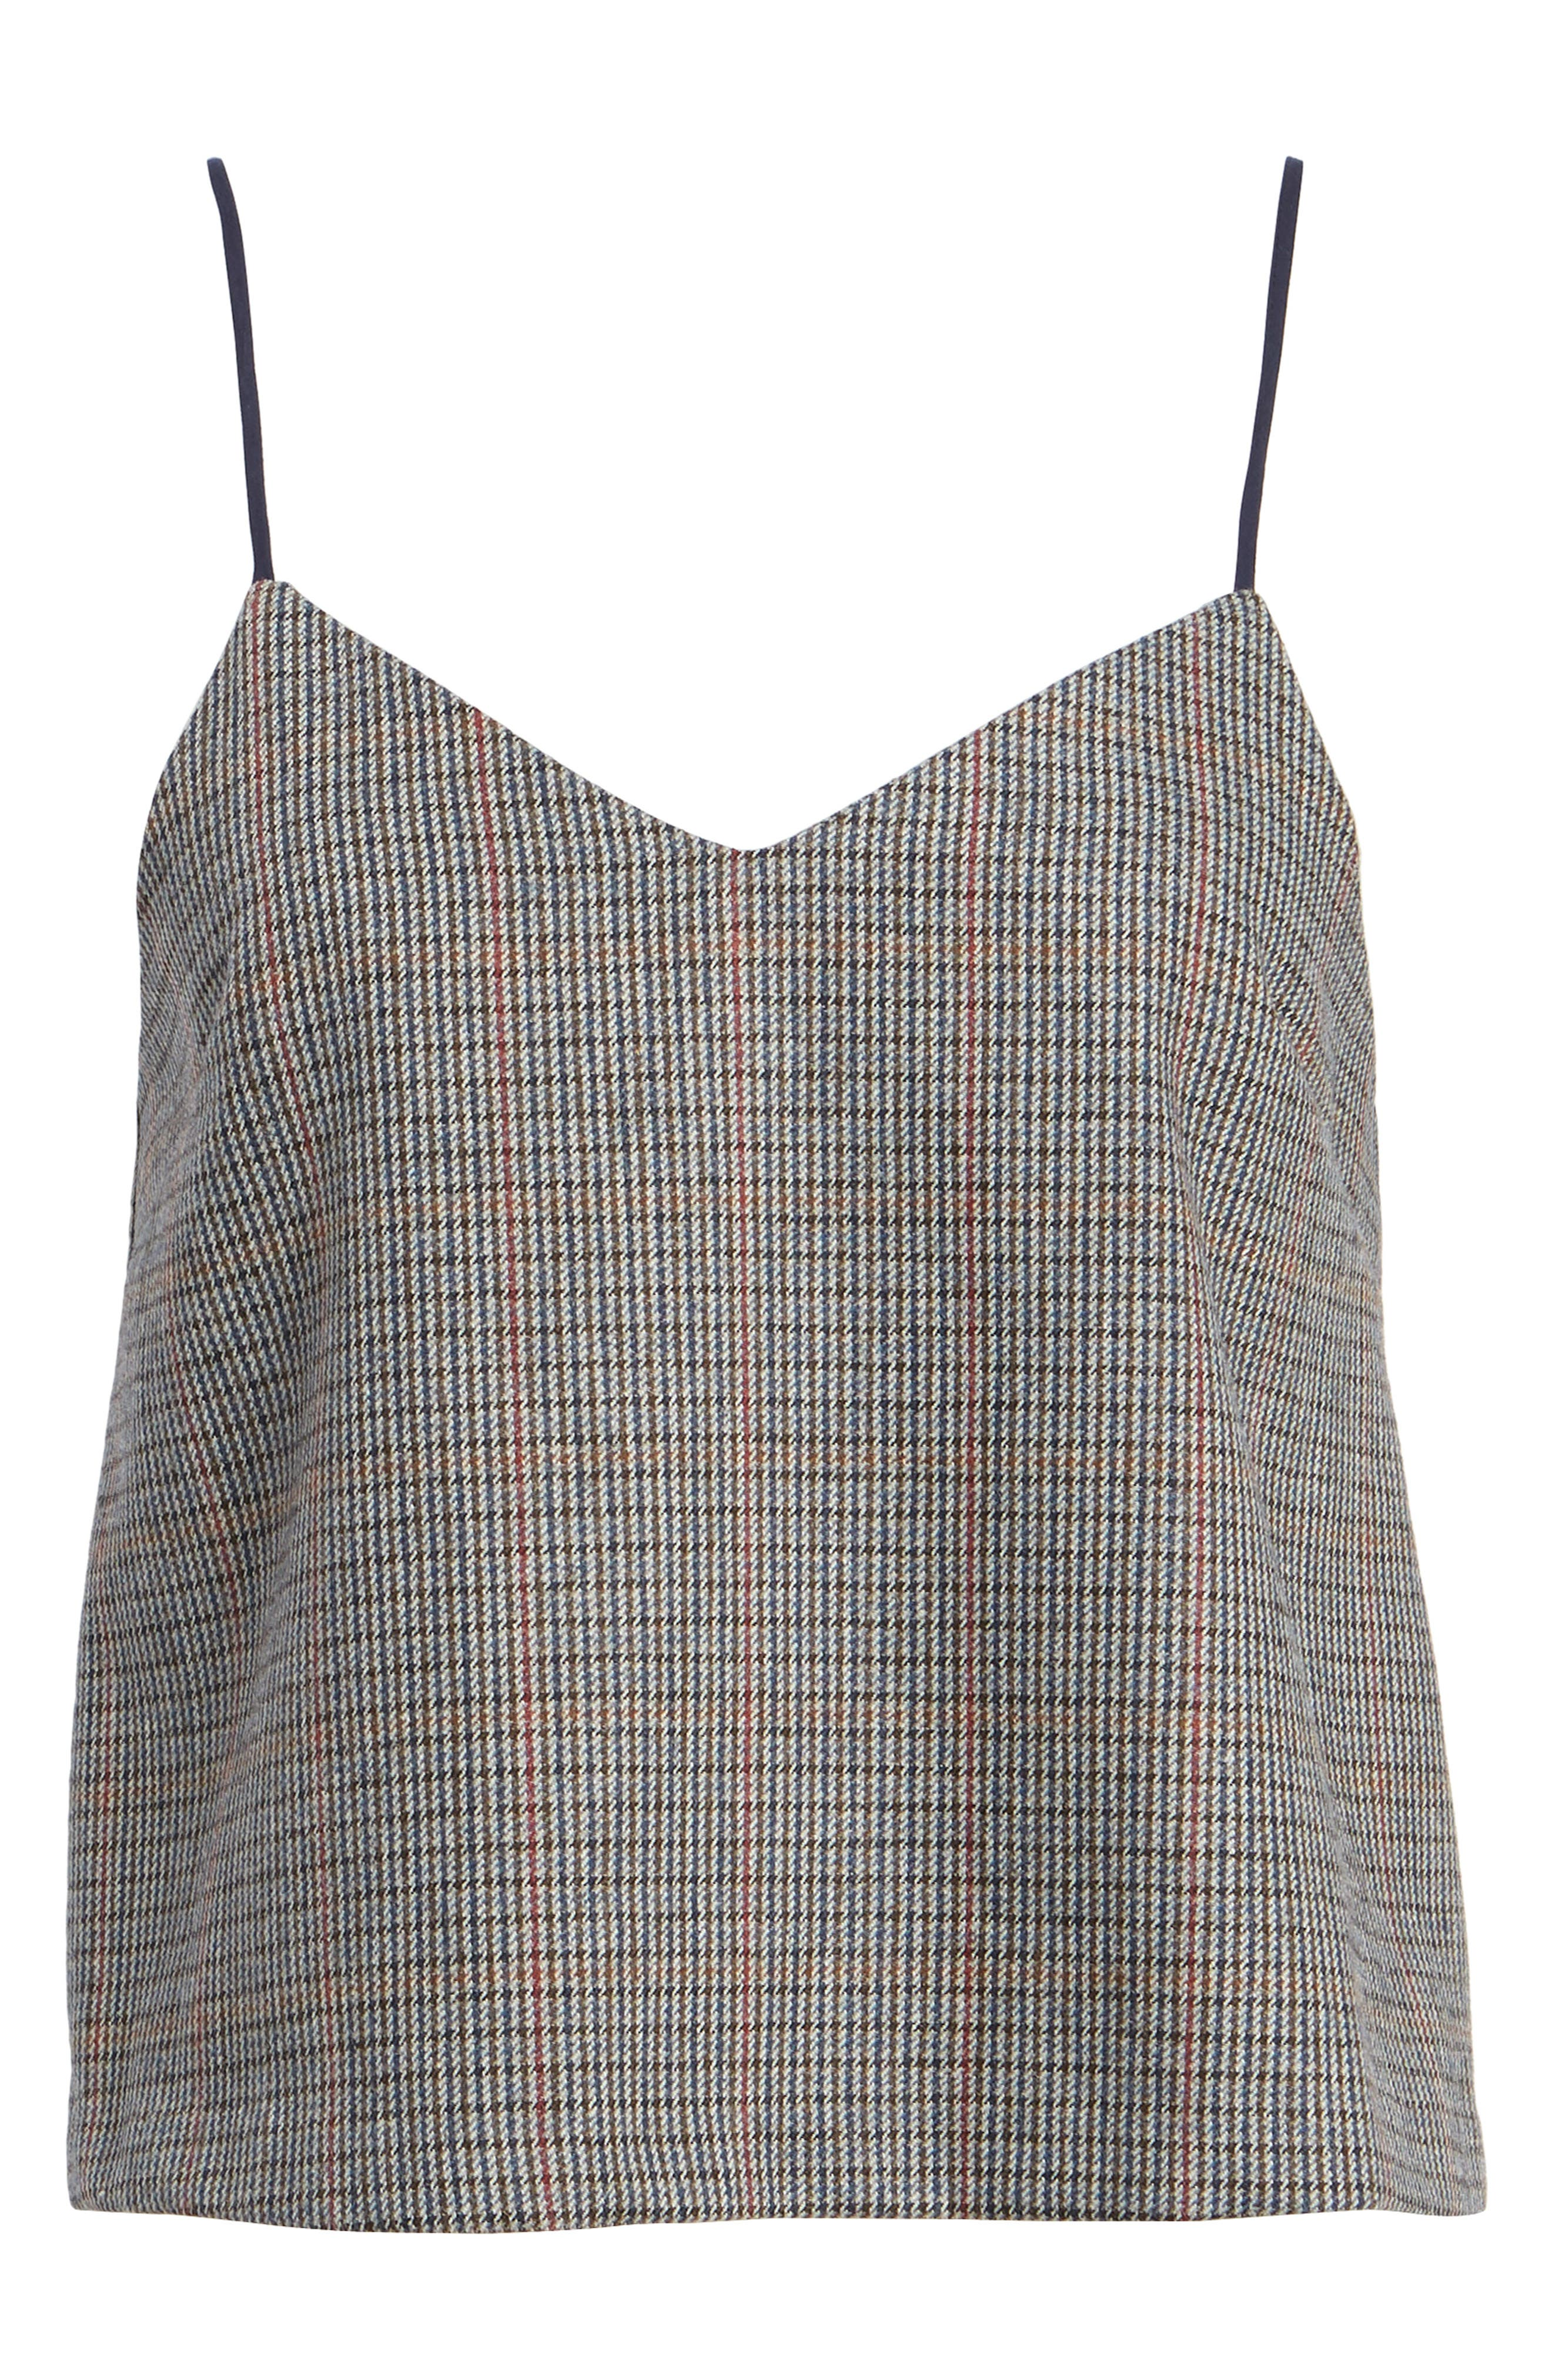 Plaid Camisole,                             Alternate thumbnail 6, color,                             Grey Plaid